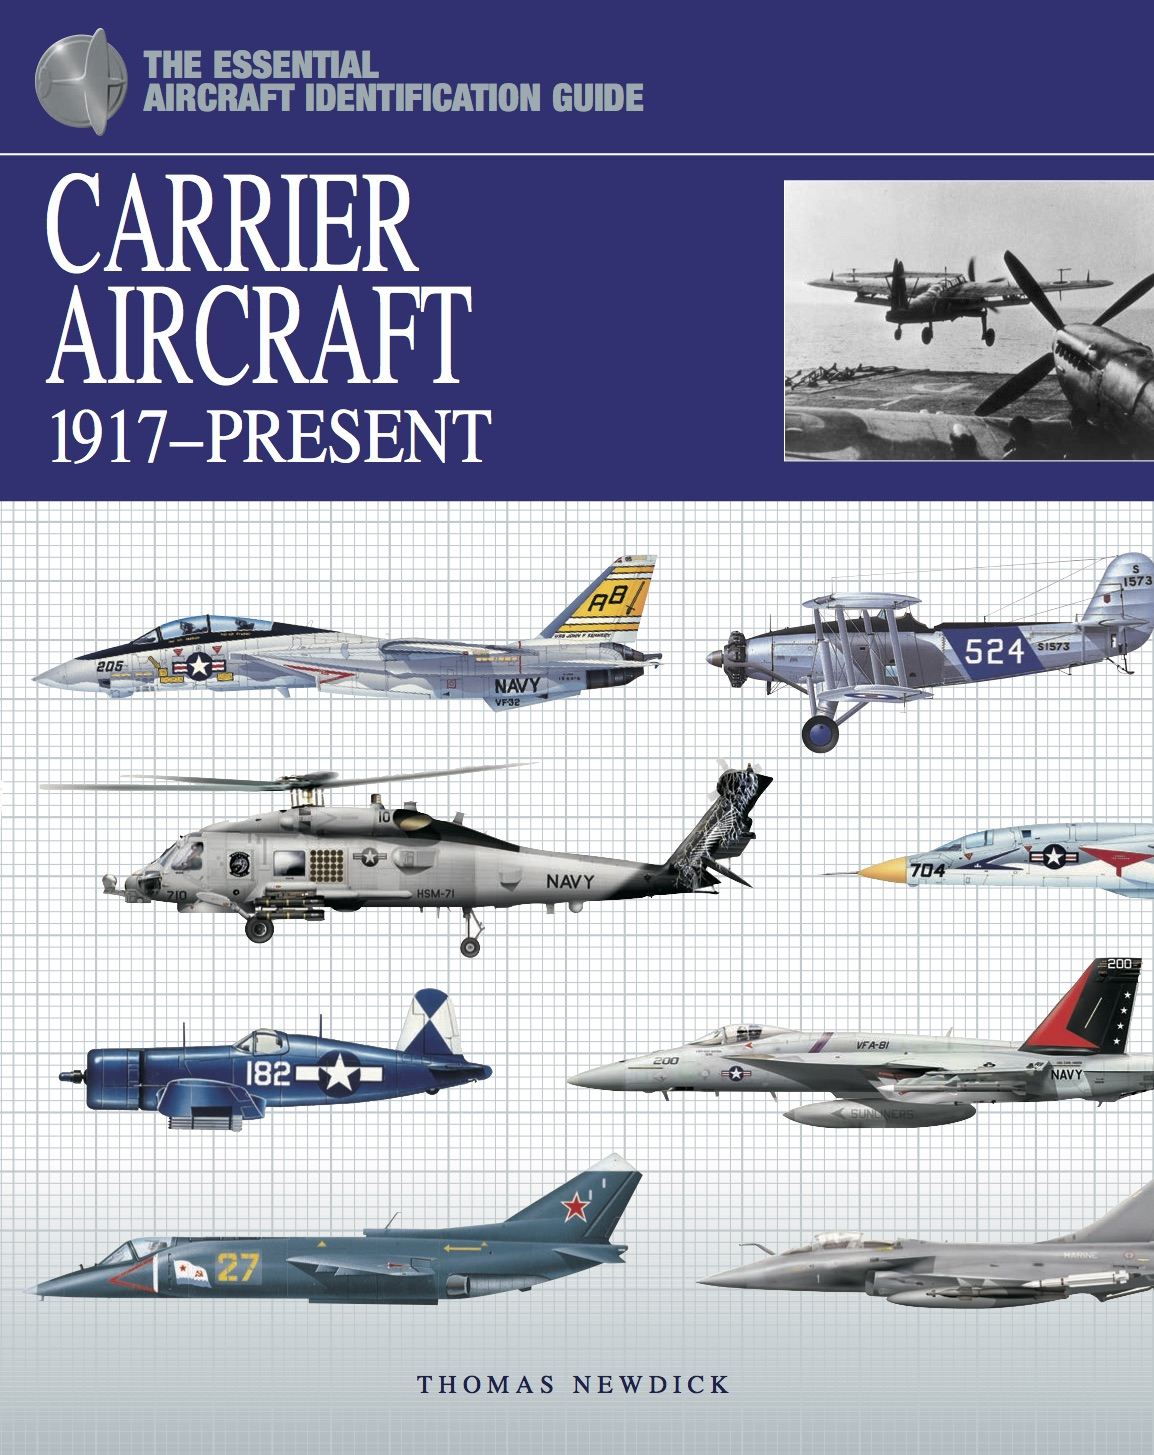 The Essential Aircraft Identification Guide: Carrier Aircraft 1917-Present